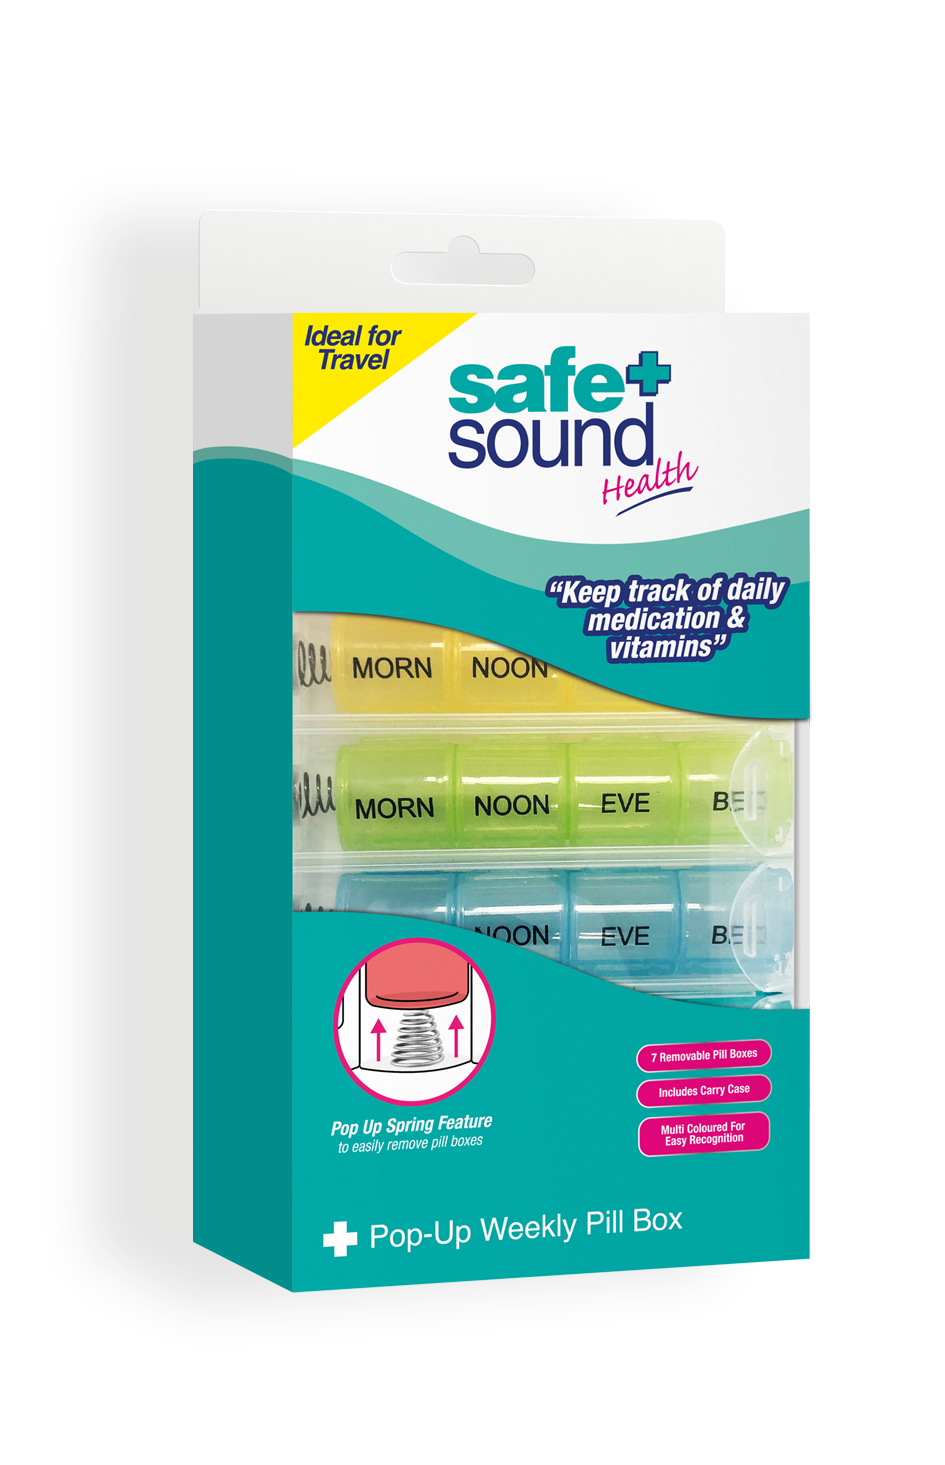 Safe and Sound Health Four Times Daily Pillbox with Case